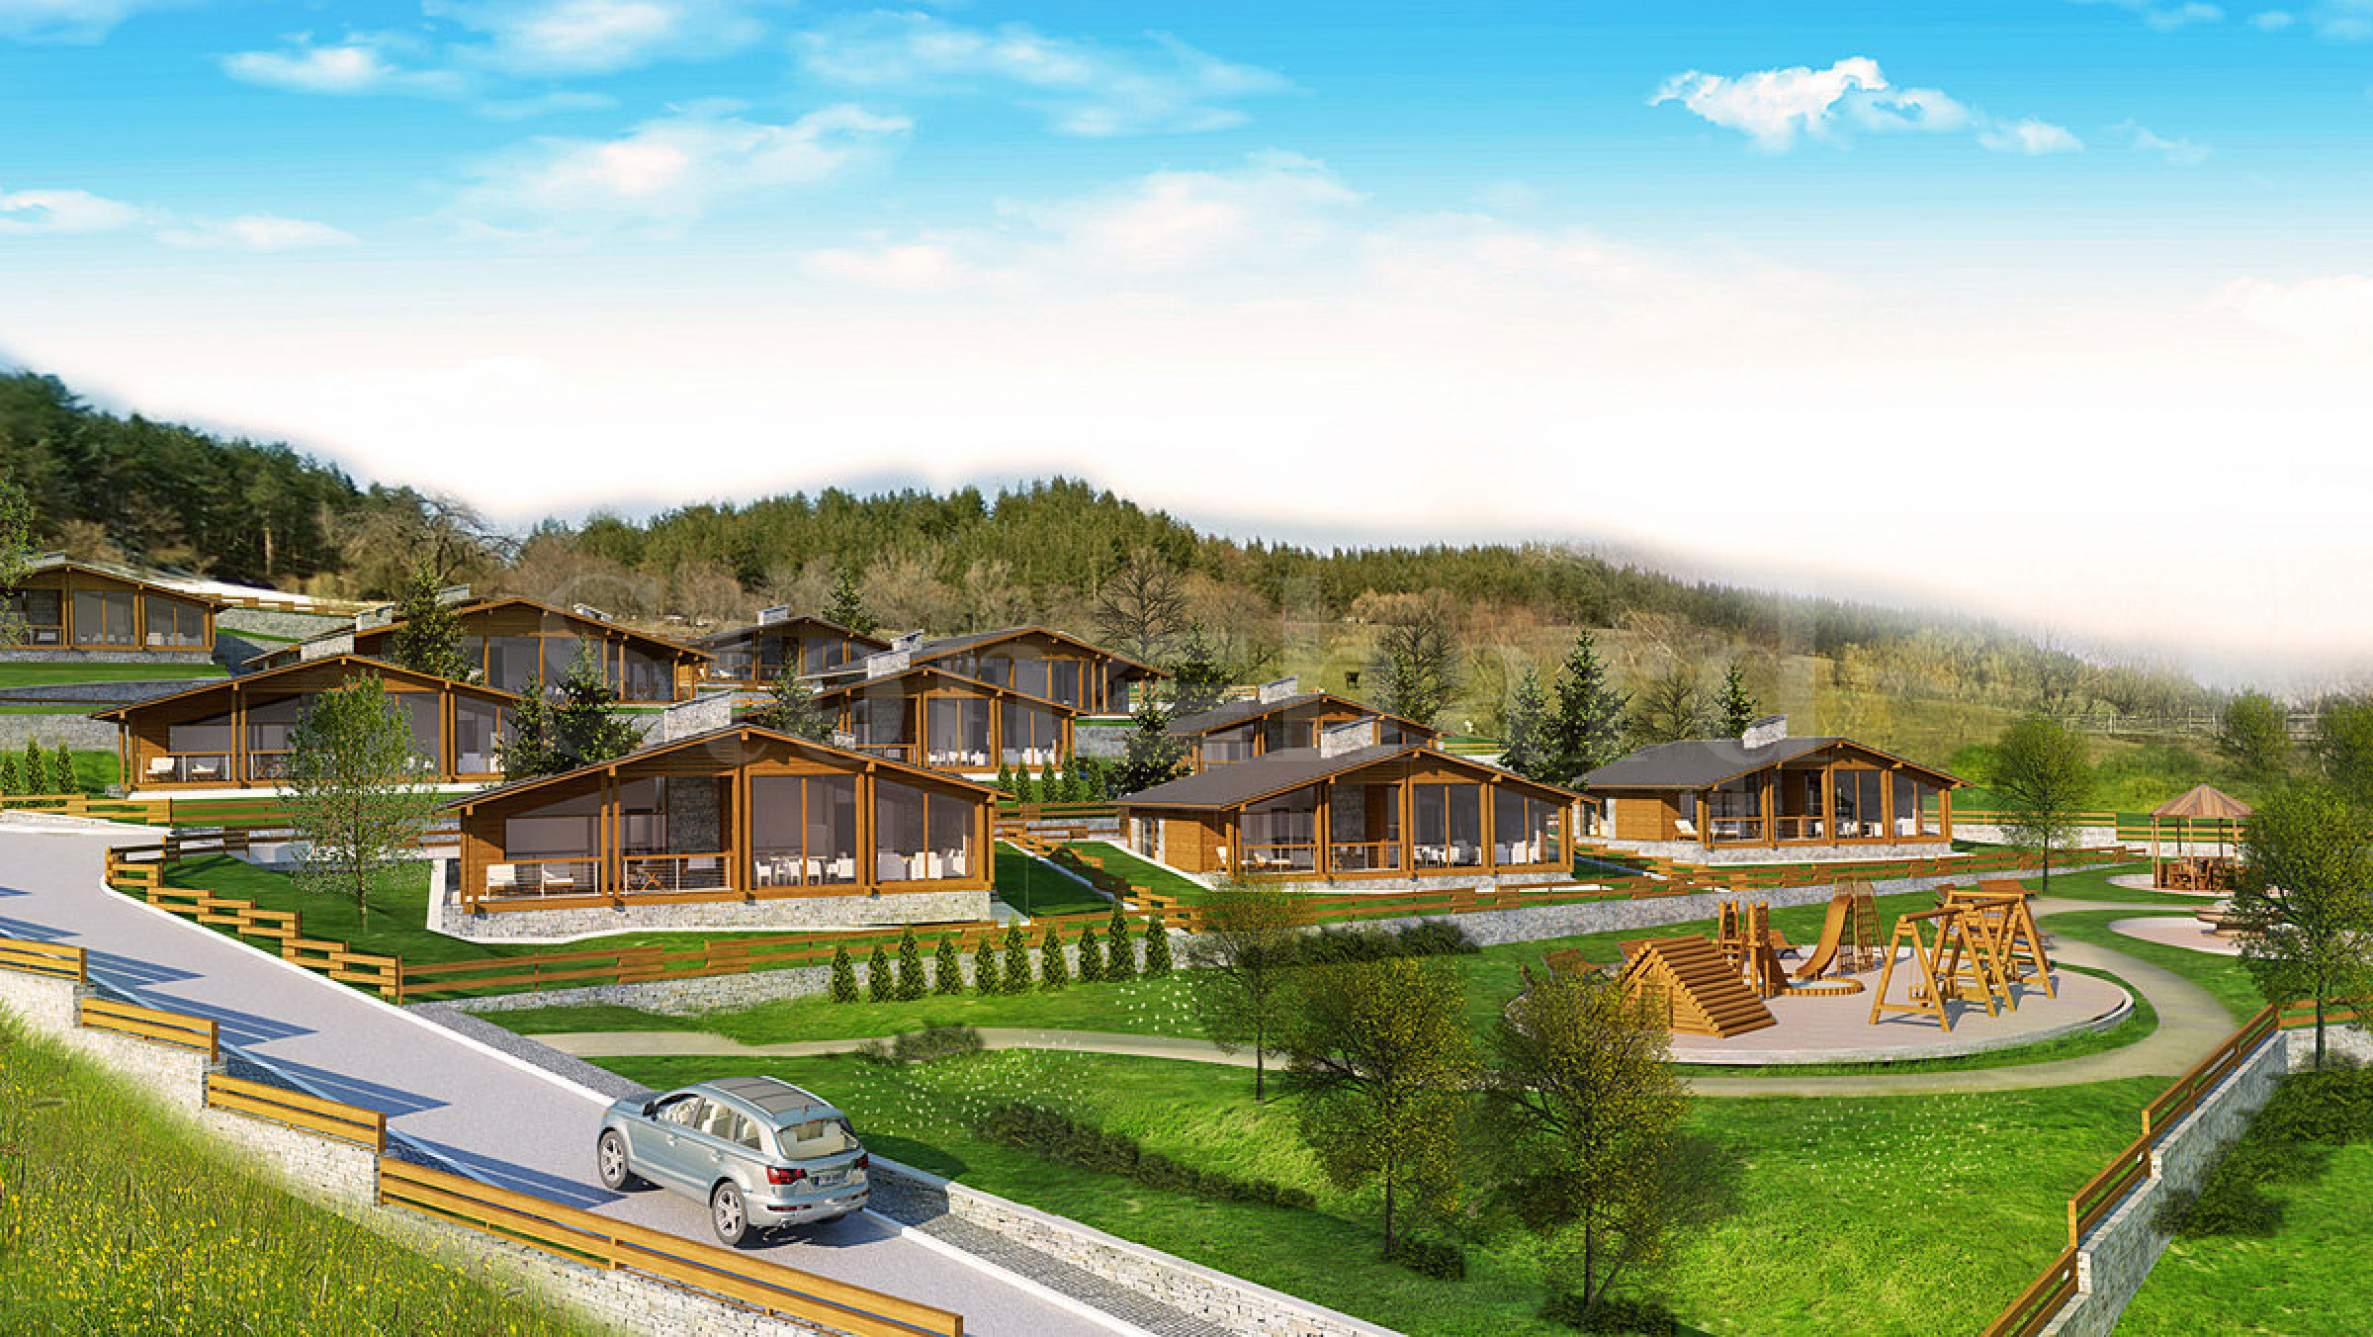 New-build mountain chalets near the ski resort of Bansko and Pirin Golf2 - Stonehard